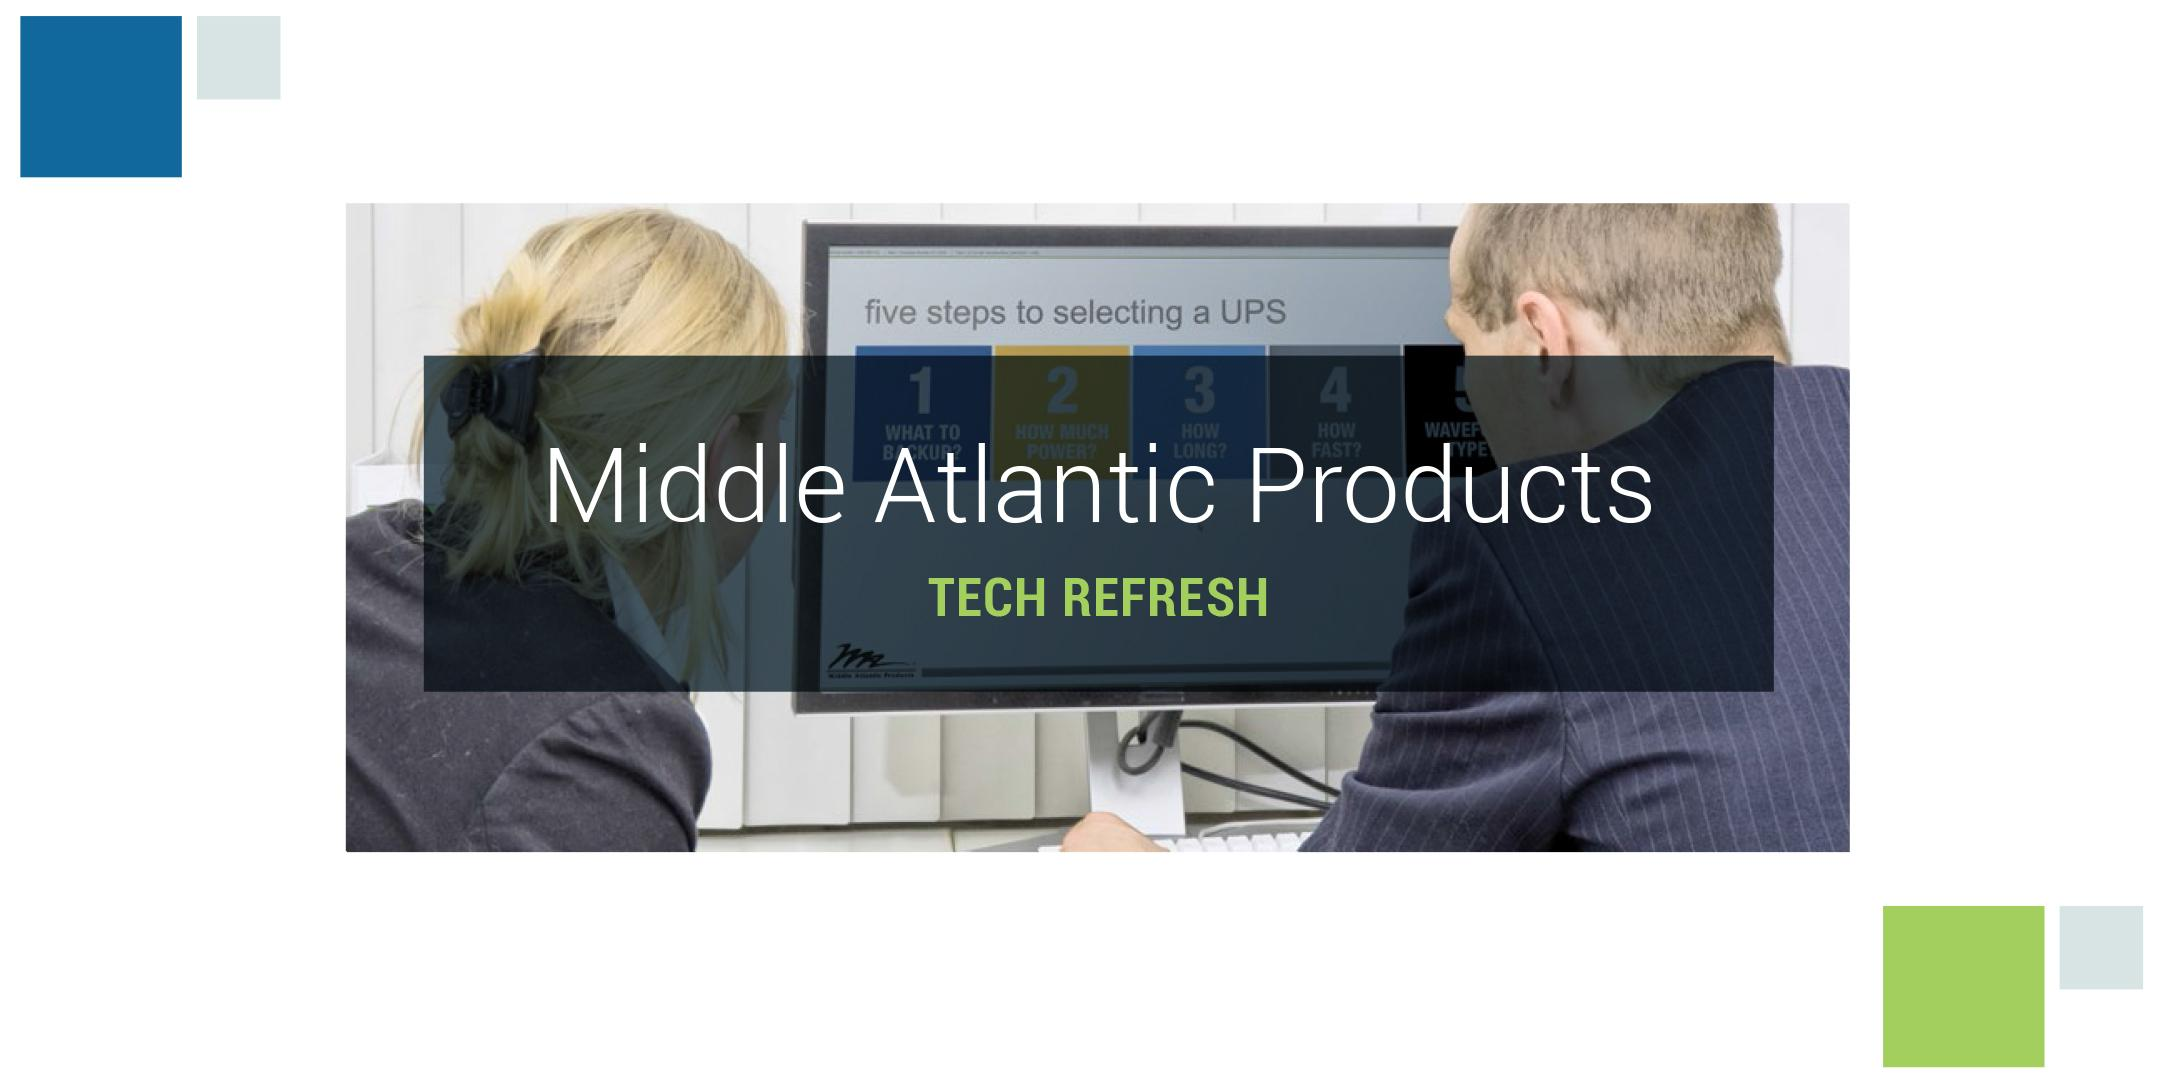 Middle Atlantic Products Tech Refresh